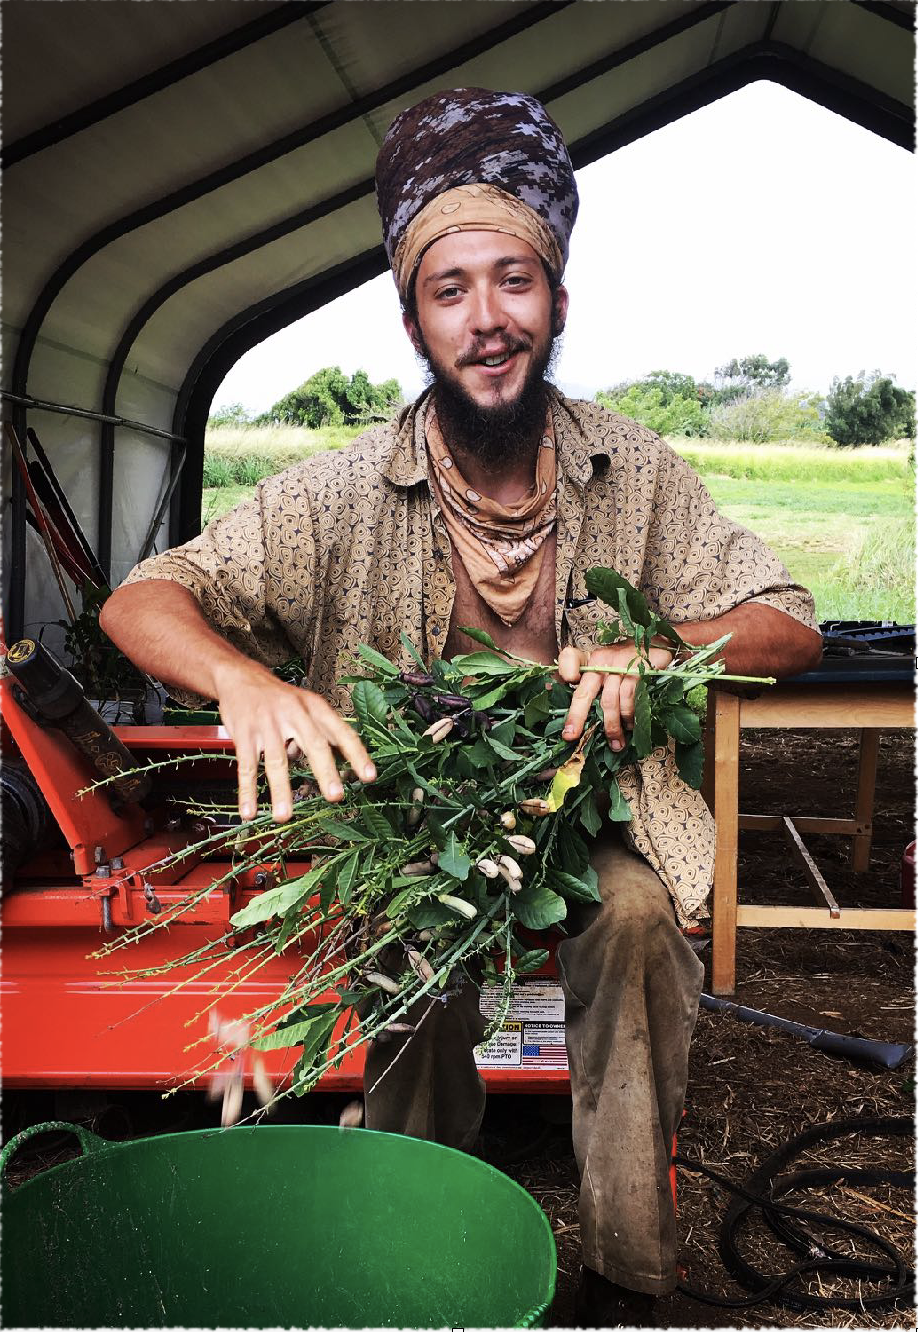 """Emil Kmetovic, 28- USA - Vision: To co-create a functional farm and living classroom to educate and inspire individuals from around the globe""""In this time of ecological decline and resource depletion we see a great need for the cultivation of useful and culturally significant heritage plants that are endangered or at risk of extinction. It is our vision to foster an ecological ark, a bastion of biodiversity, to ensure that future generations will have continued access to these precious plants and ways of living.""""For the past 4 years Emil has been living and working with Vanessa to grow our """"living classroom"""" and visionary farm/ campus on the Big Island Hawaii."""